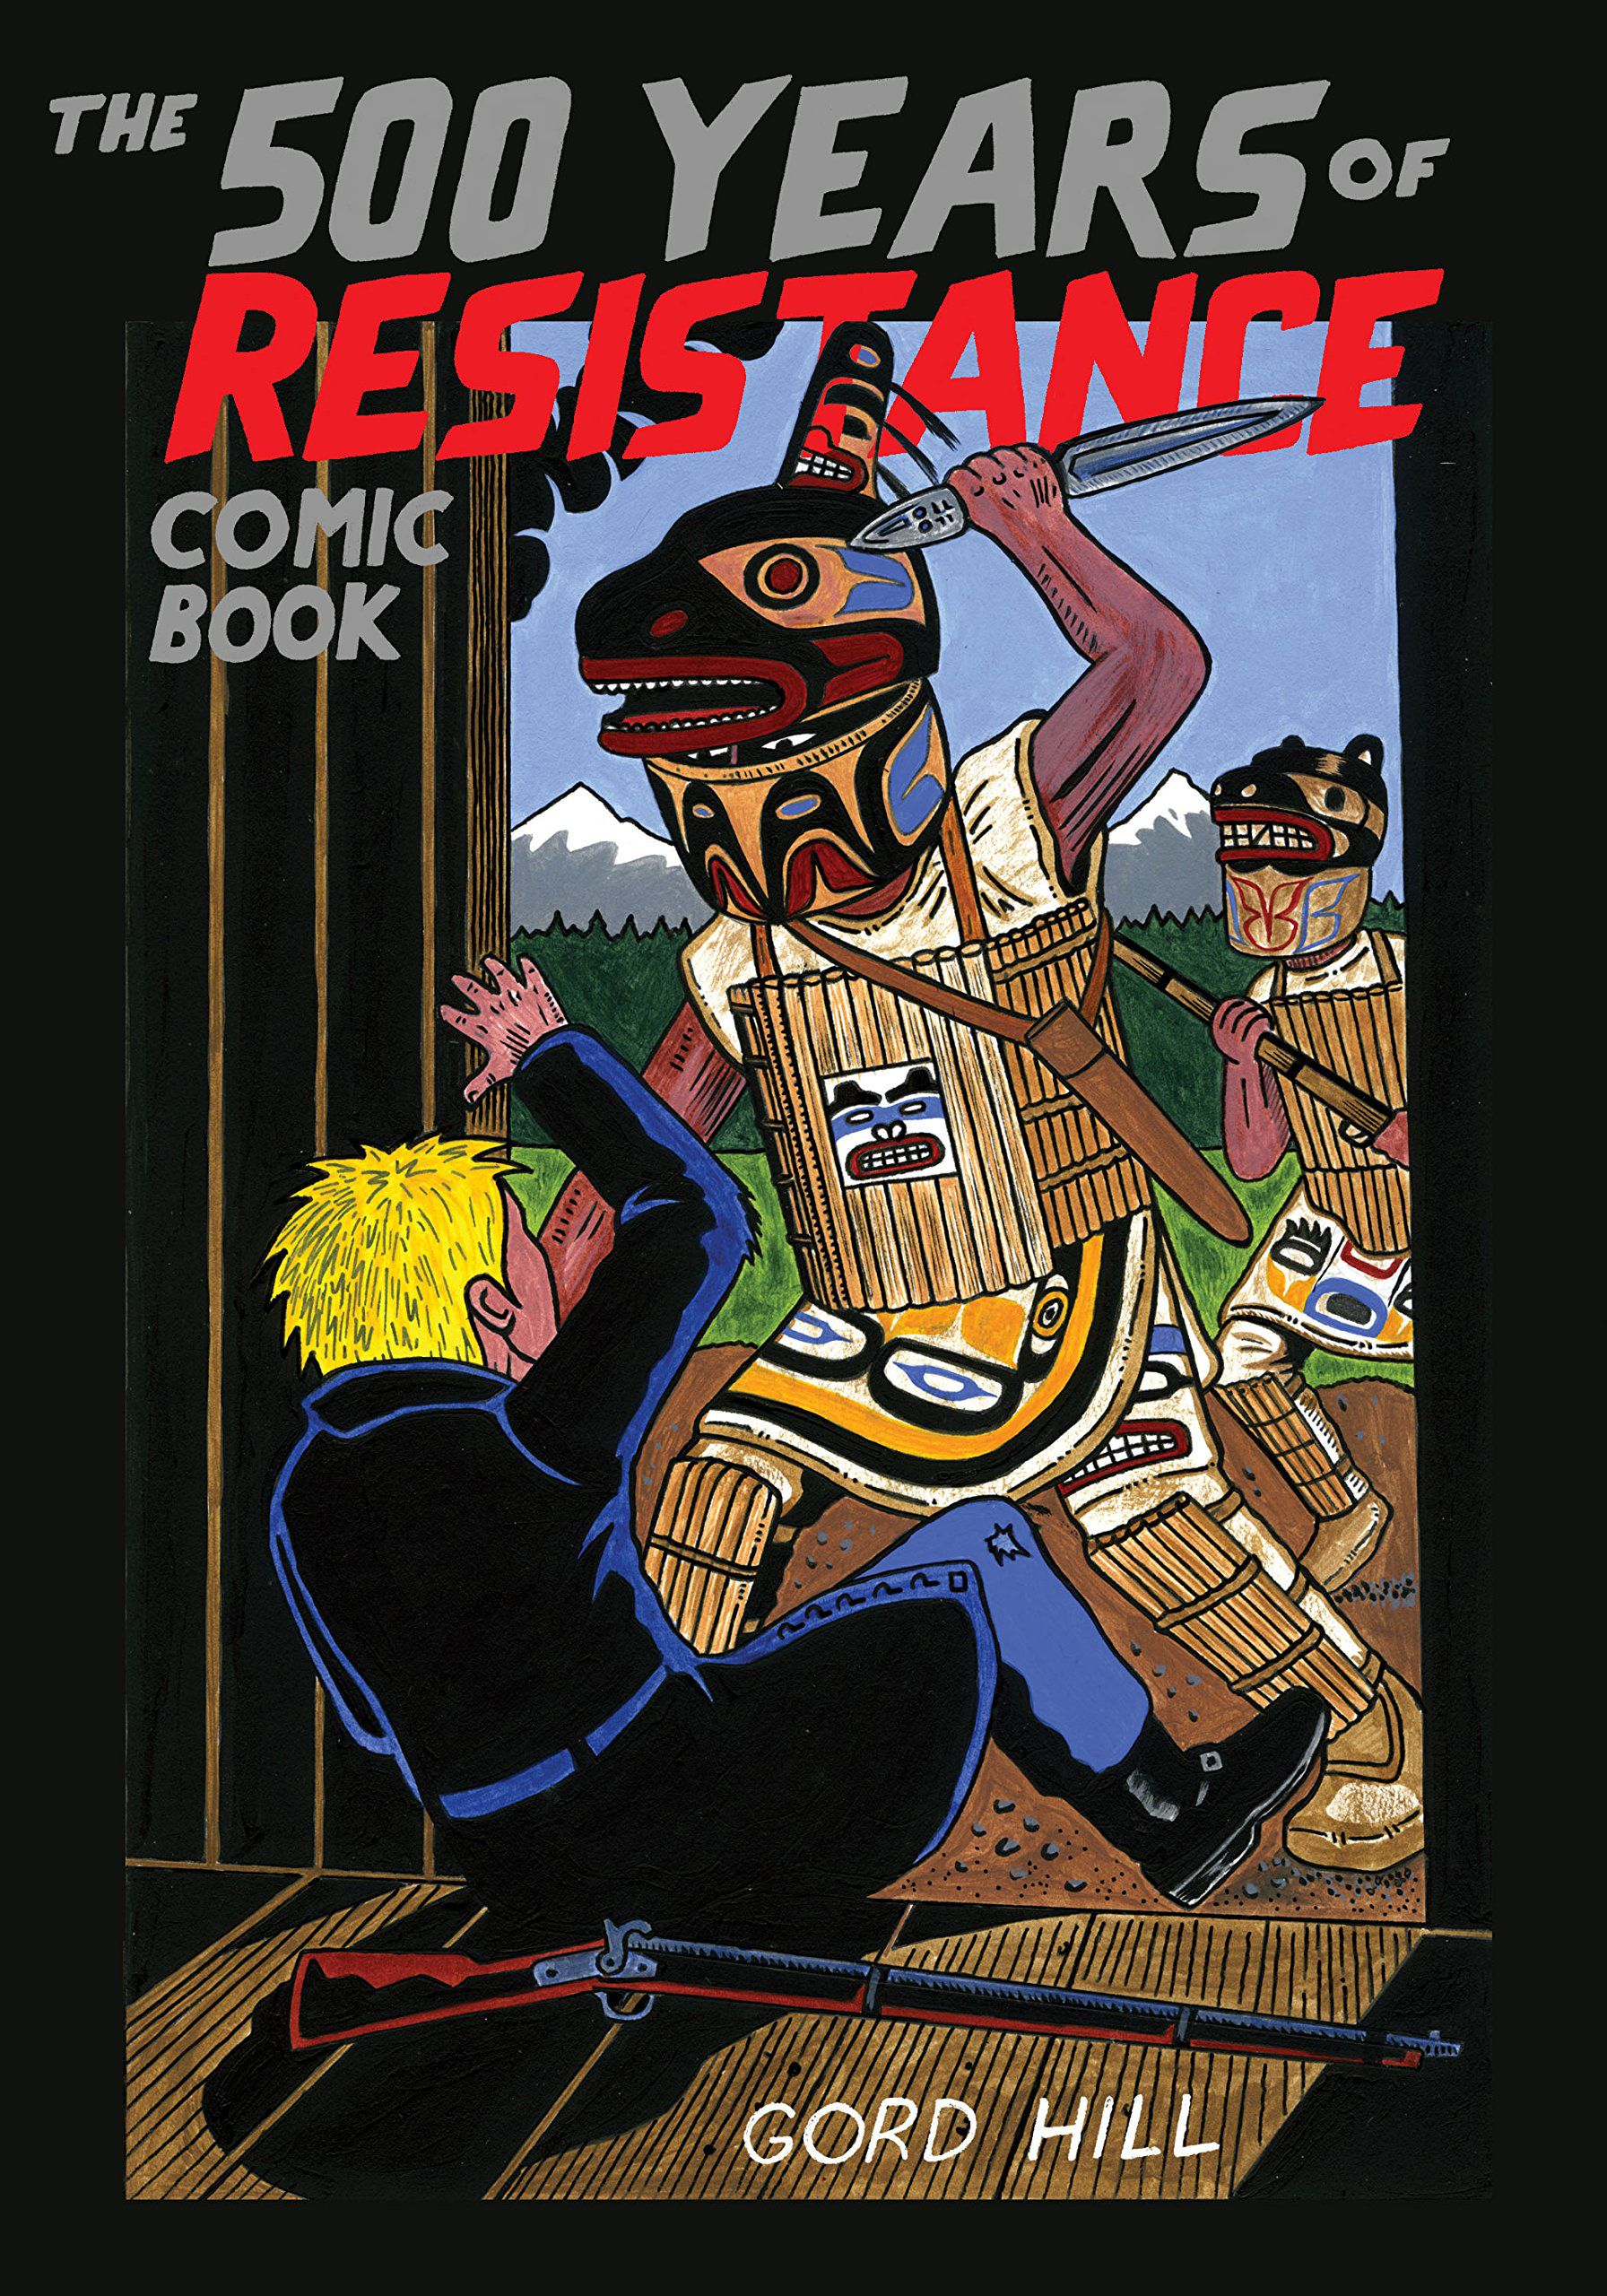 The 500 Years of Resistance Comic Book cover